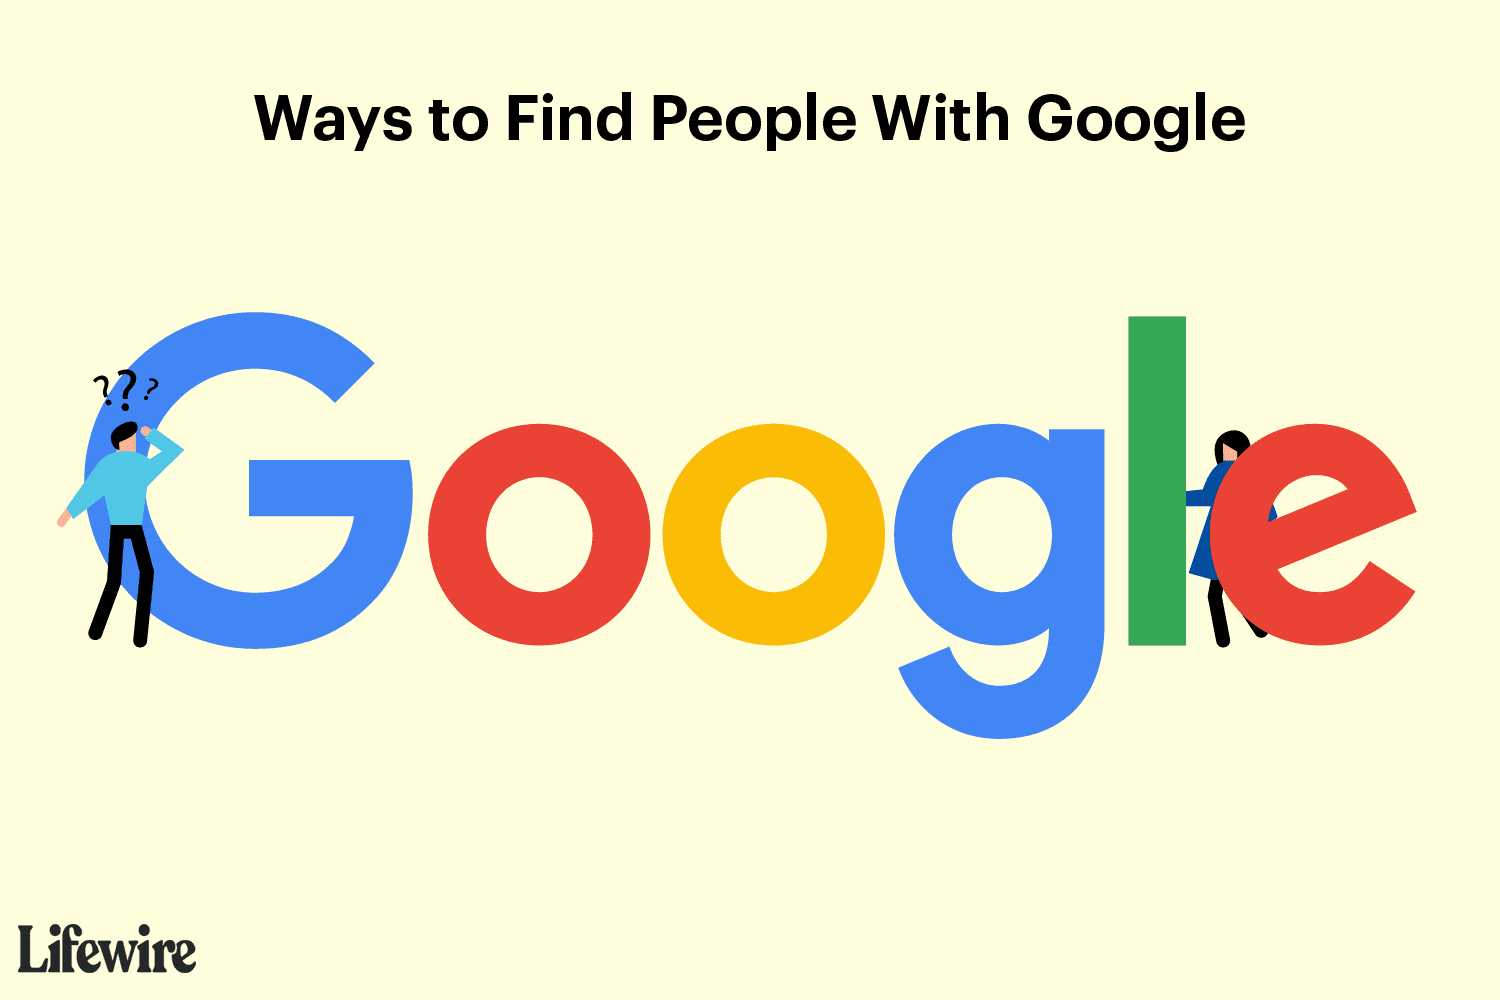 An illustration of someone searching for a person using Google.